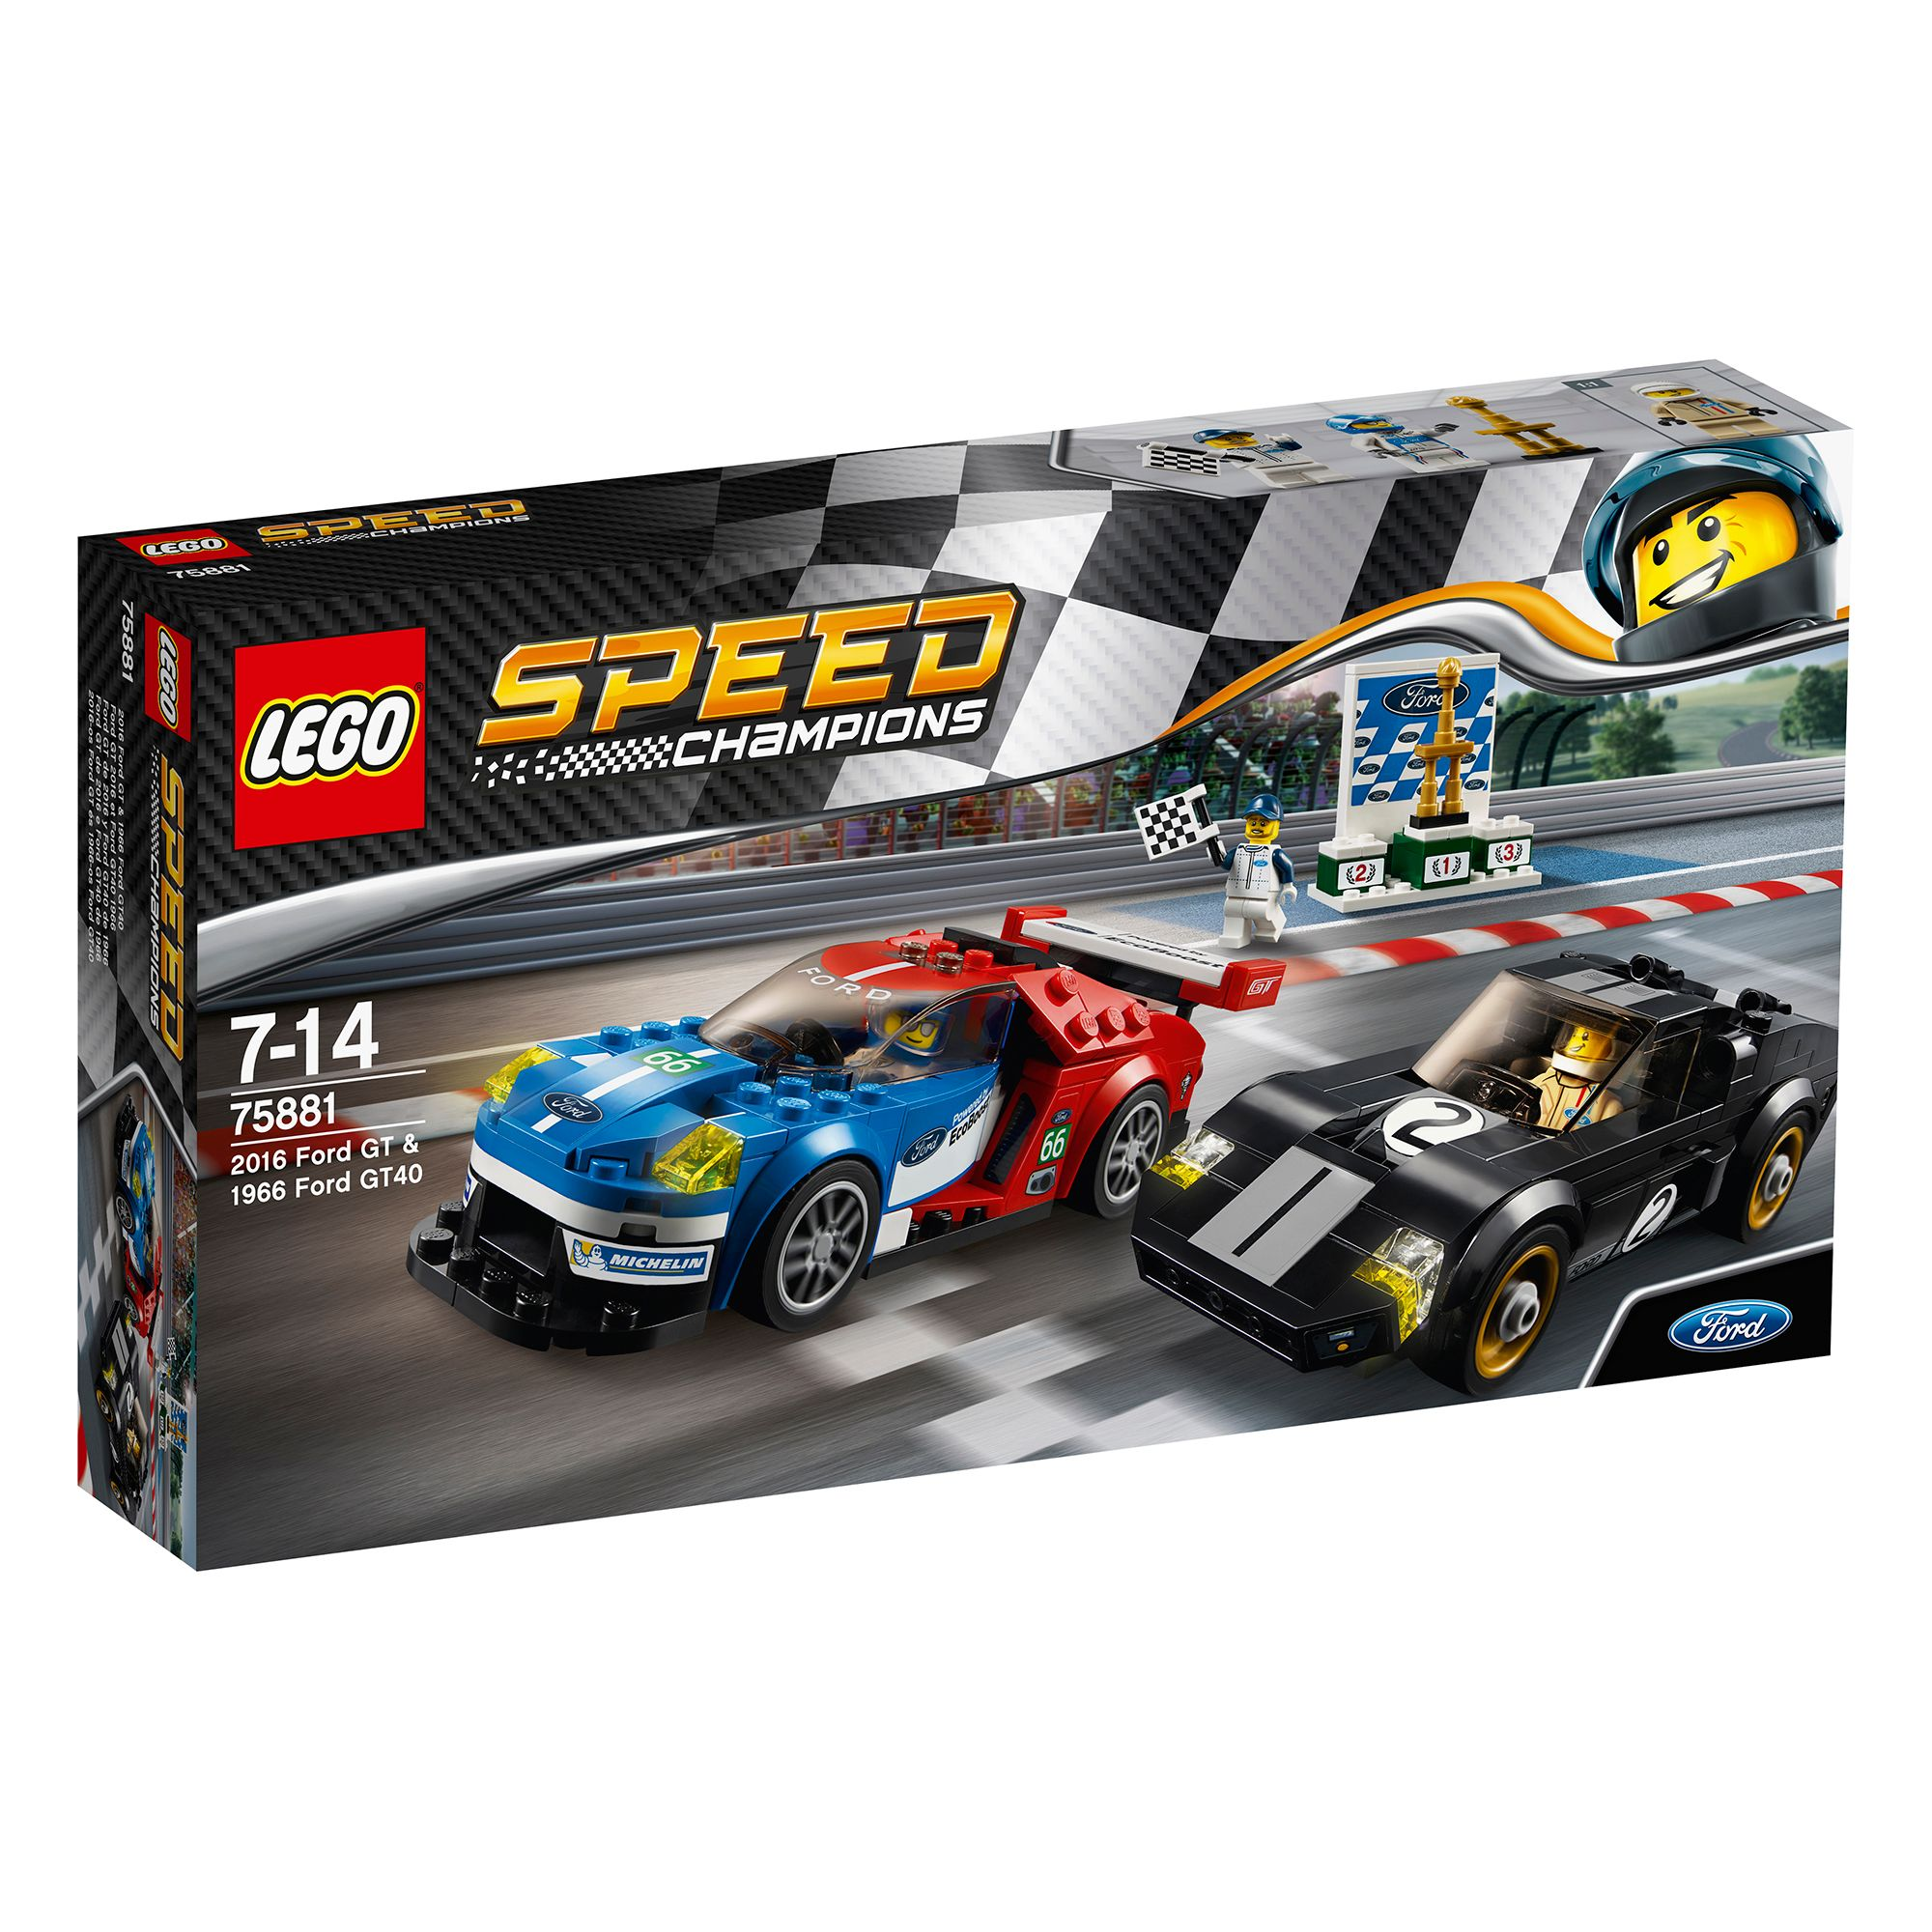 Image of Lego Speed Champions 2016 Ford GT & 1966 Ford